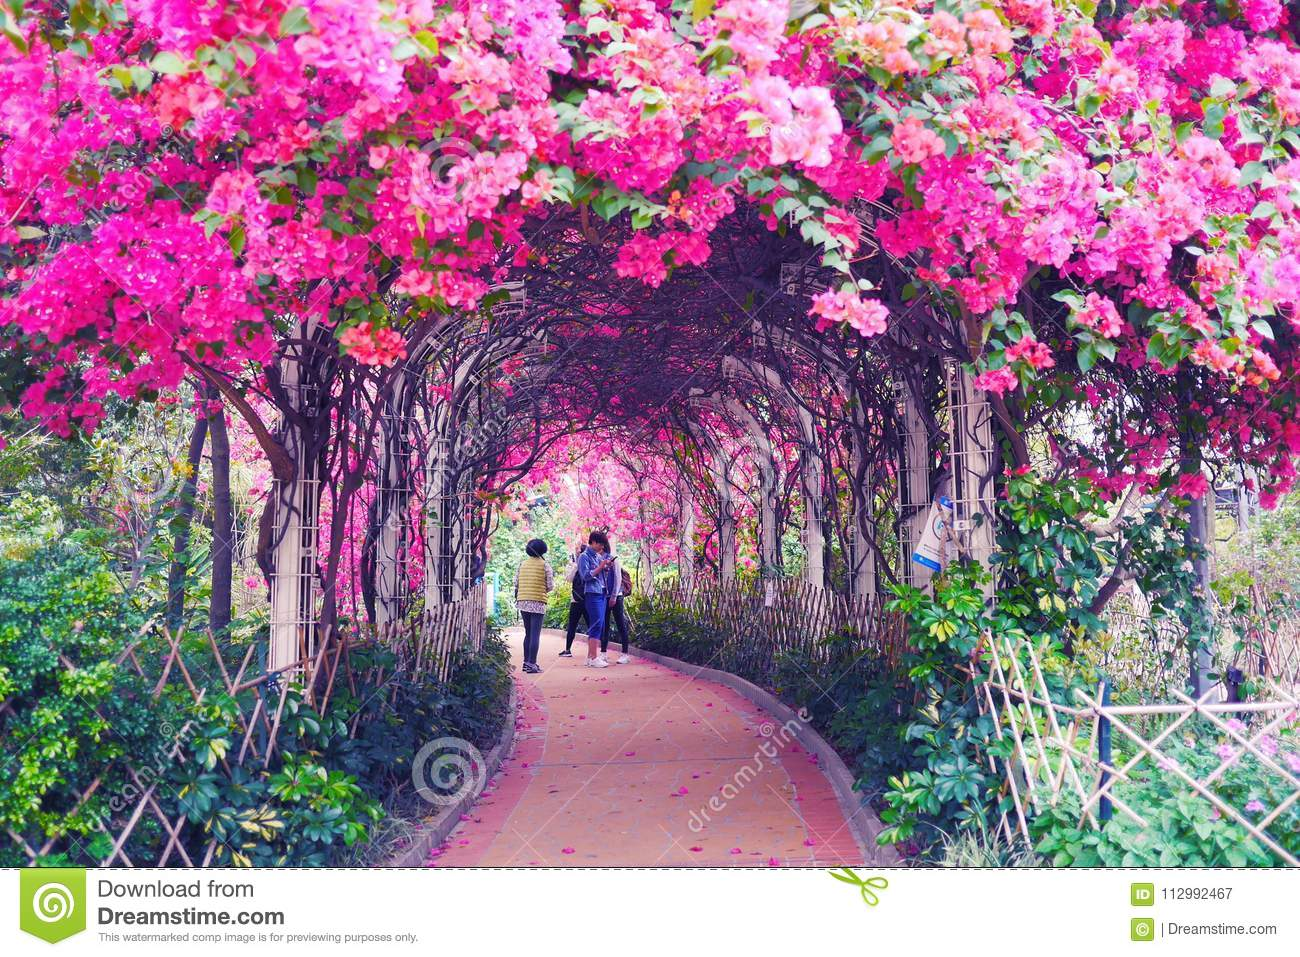 Tunnel through climbing so many Pink flowers. So Romantic flower Tunnel.